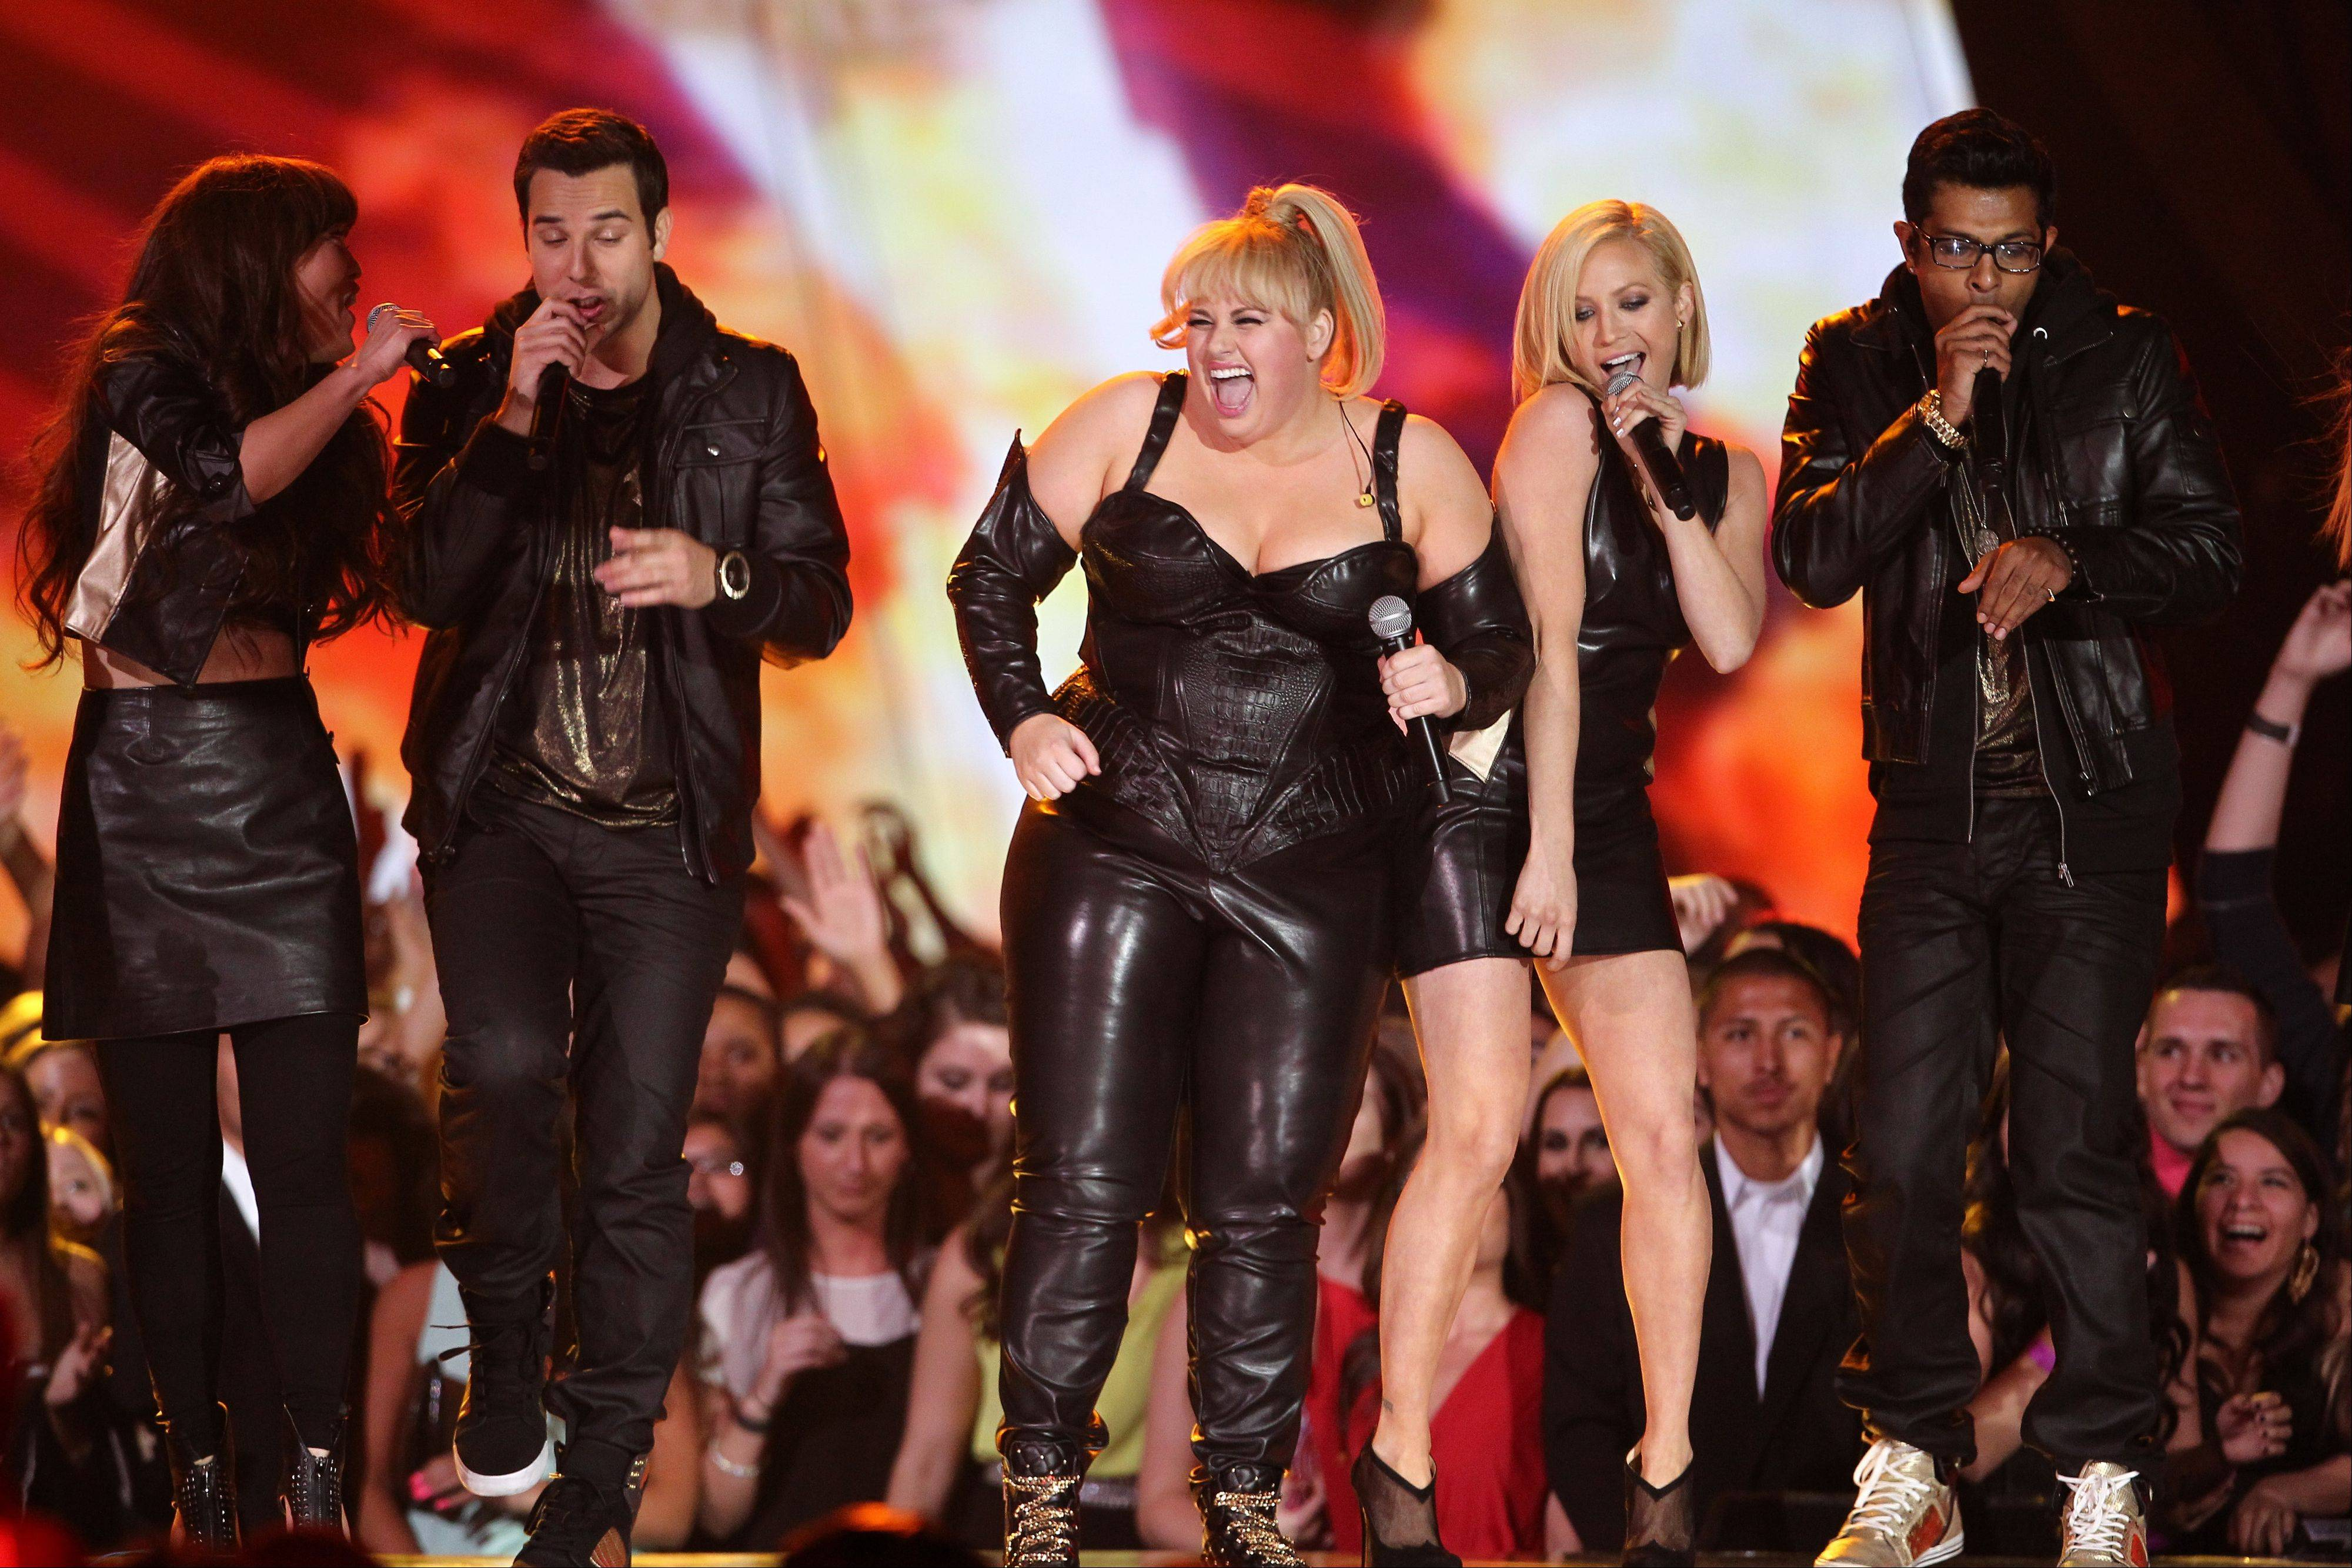 Host Rebel Wilson and the cast of �Pitch Perfect� perform onstage at the MTV Movie Awards in Sony Pictures Studio Lot in Culver City, Calif., on Sunday April 14, 2013.